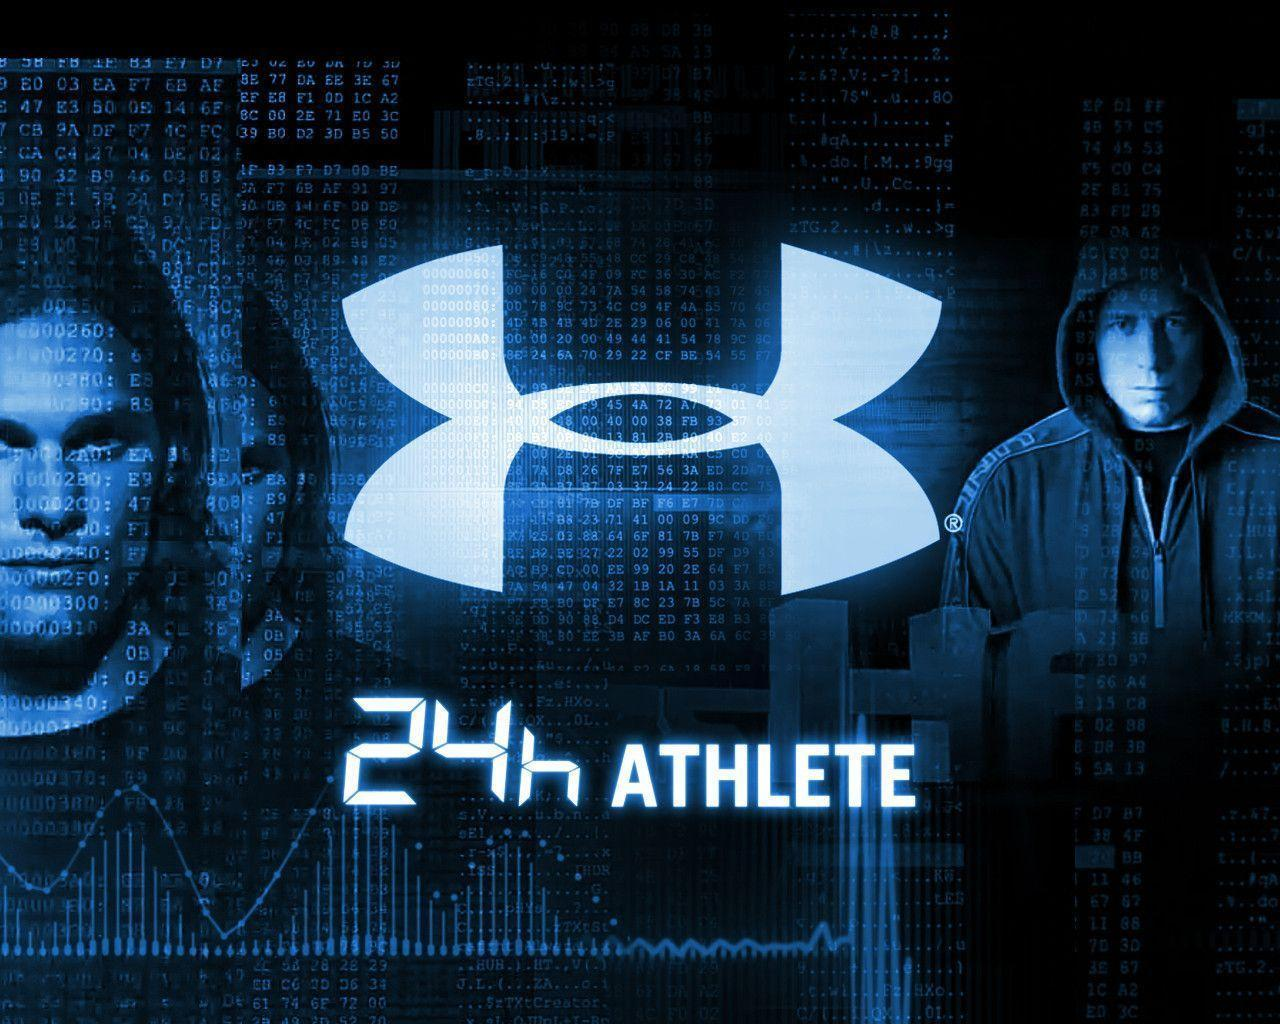 Under Armour Wallpaper HD - WallpaperSafari